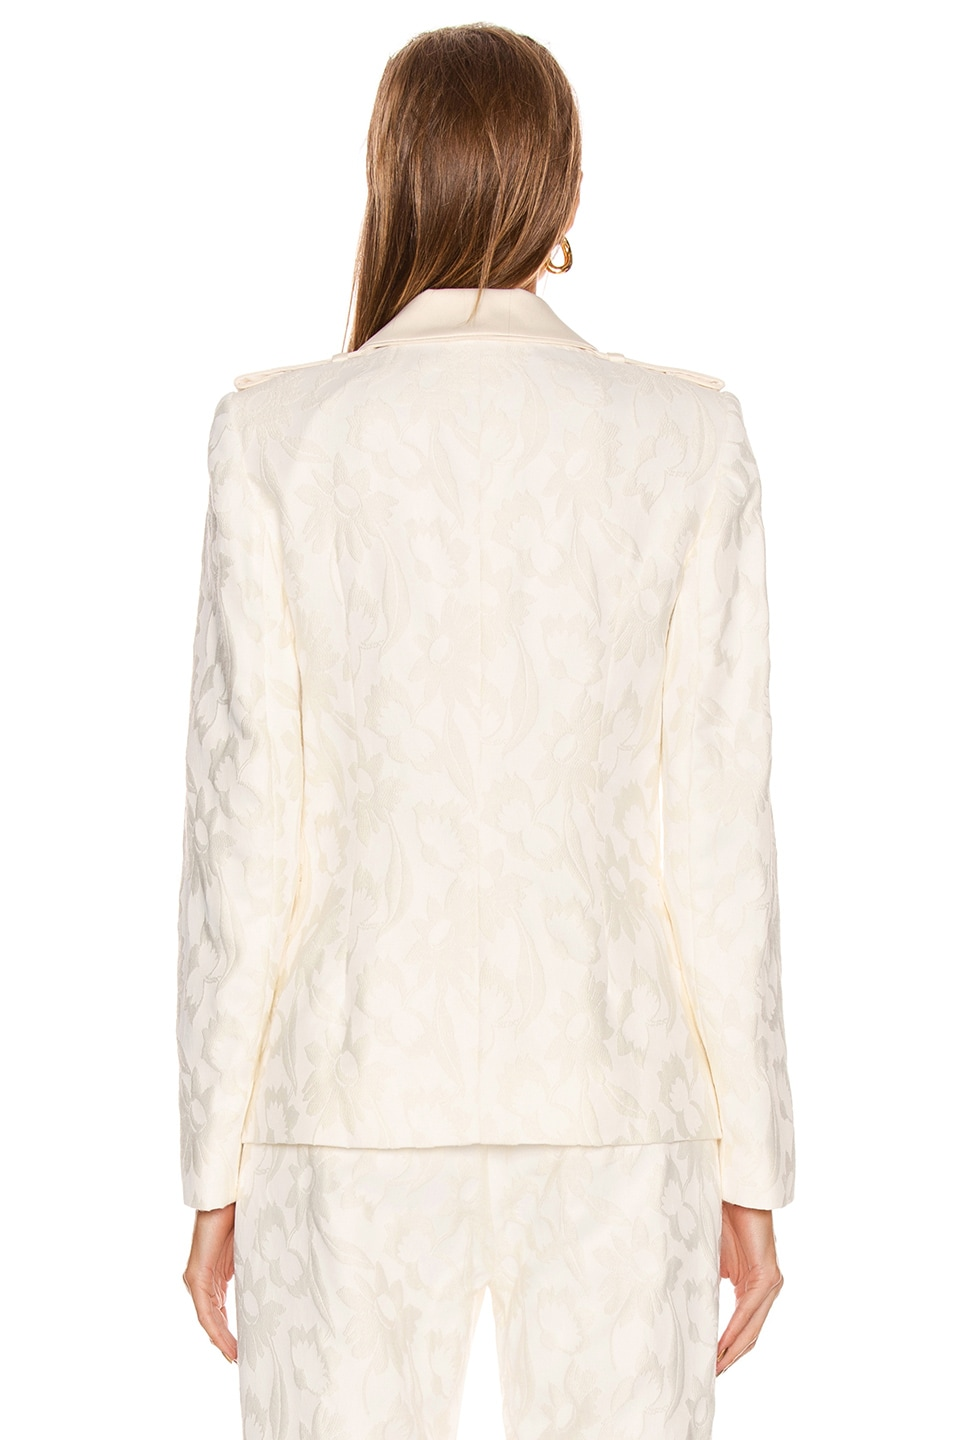 Image 3 of Alexis Claudya Jacket in White Floral Jacquard